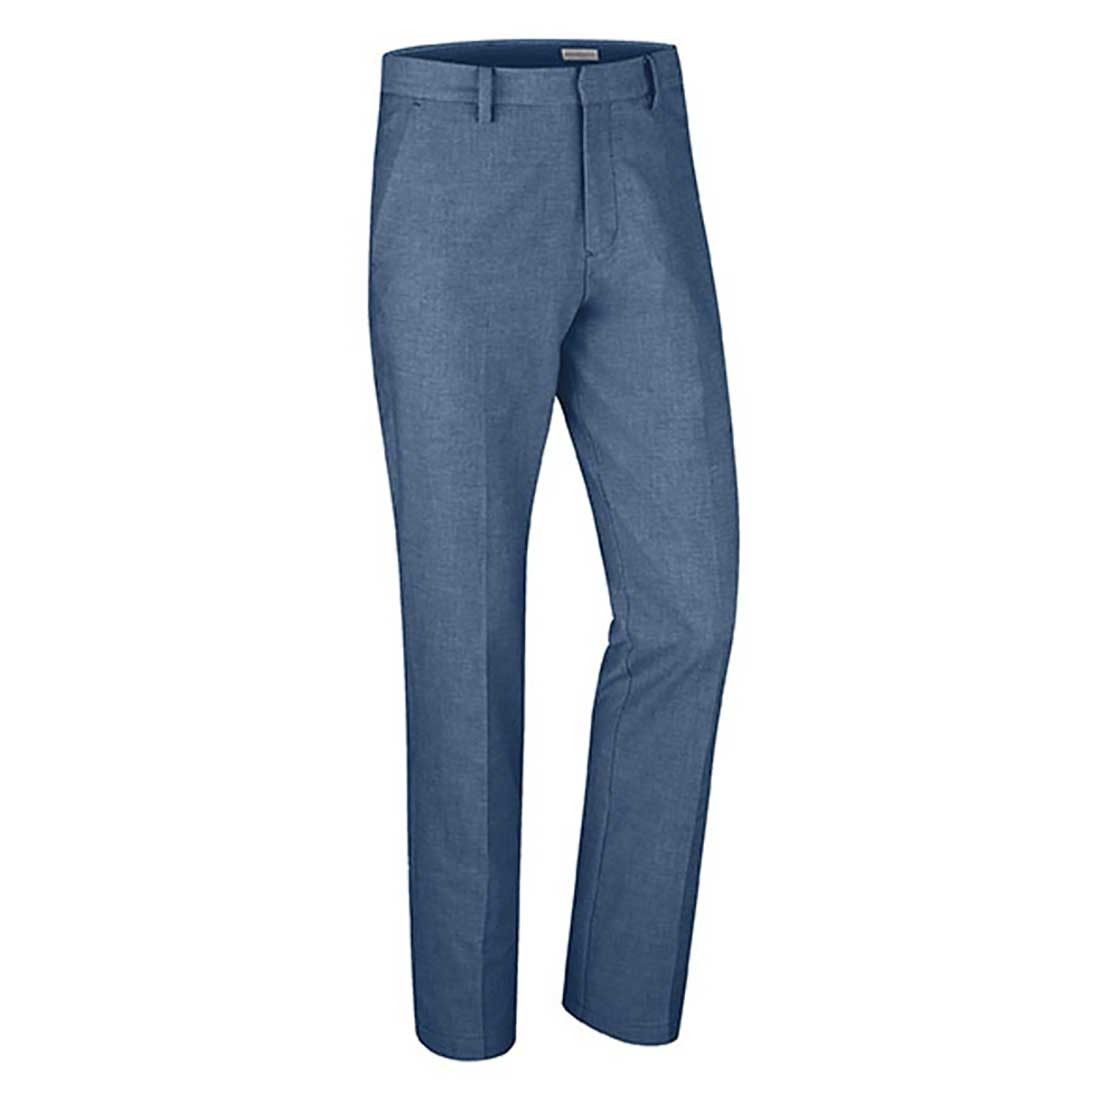 Ashworth Cotton Blend Oxford Flat Front Pant Blue